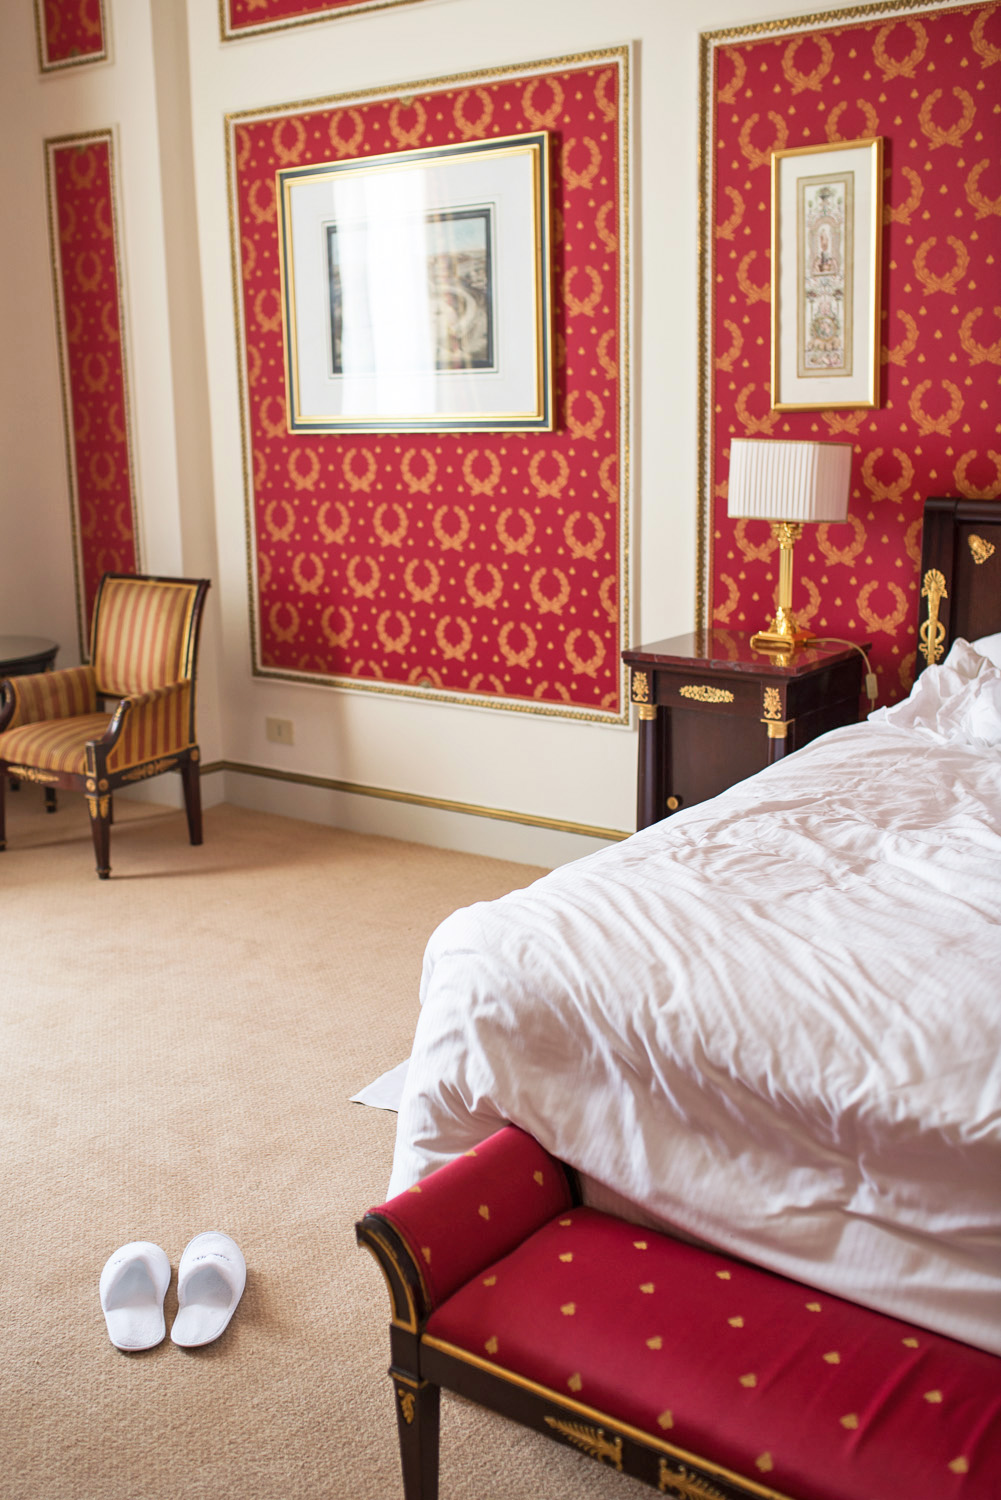 Westin-Excelsior-Hotel-Rome-Bedroom-2